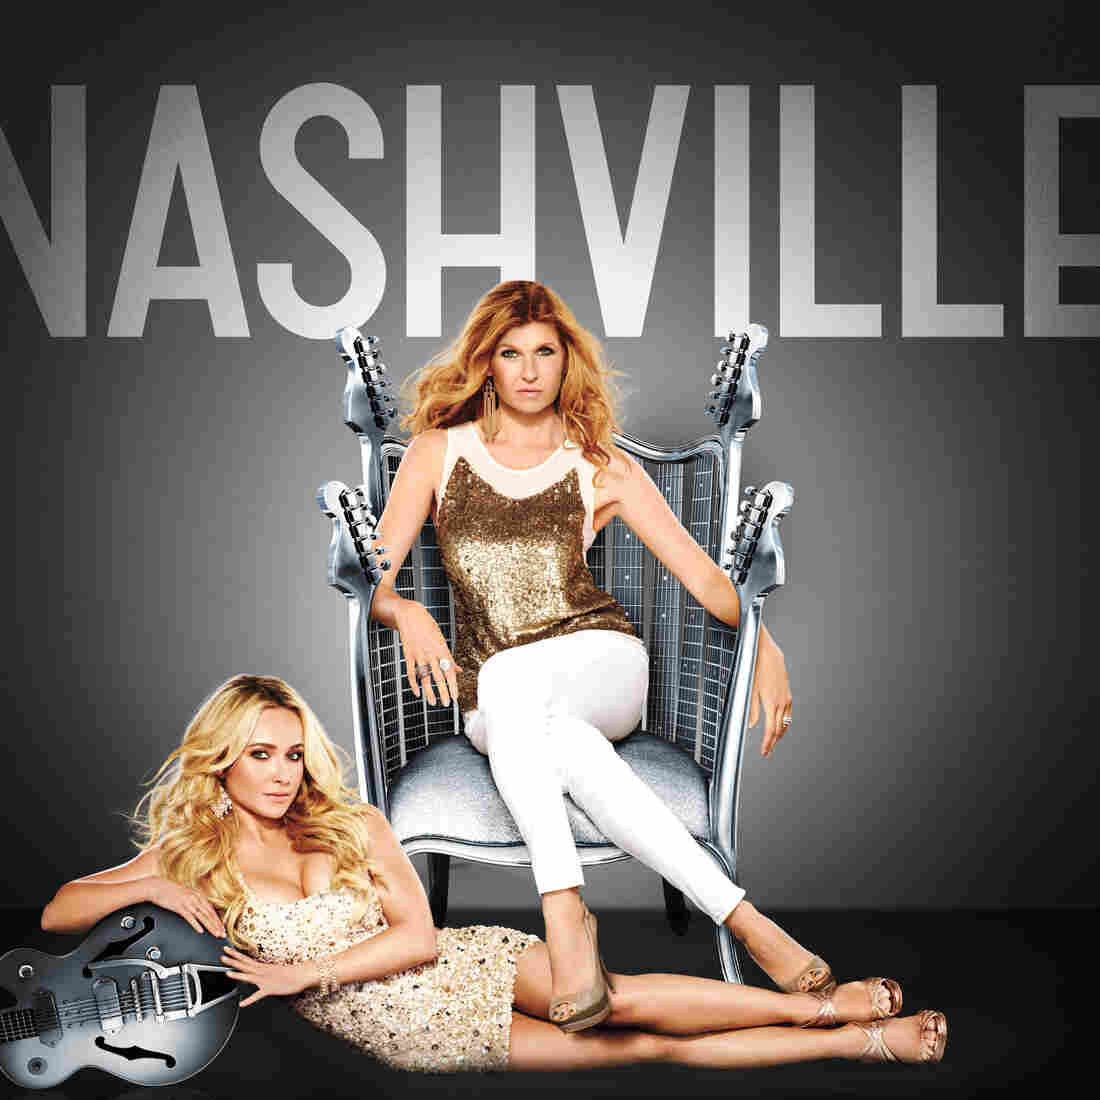 Connie Britton (pictured) and Hayden Panetierre star as country singers of different generations on the ABC series Nashville.